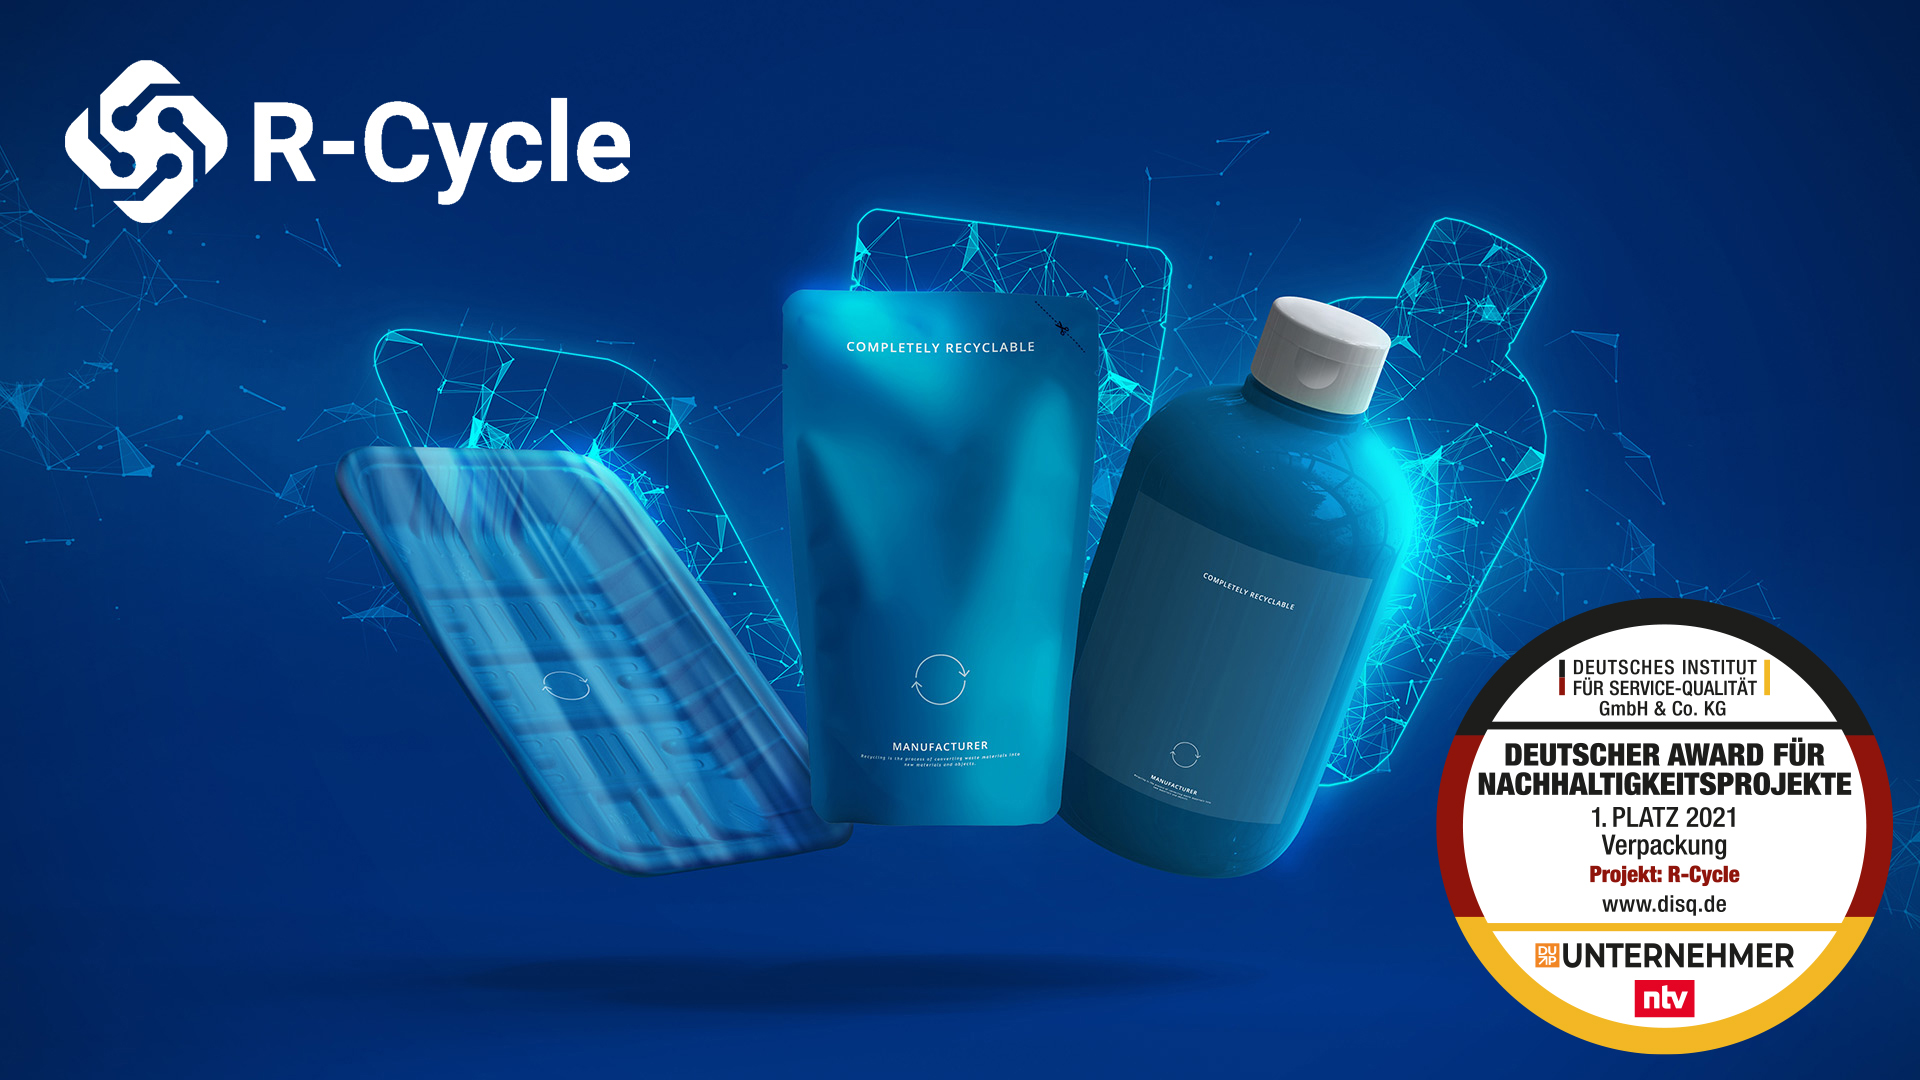 R-Cycle wins the German Sustainability Award 2021